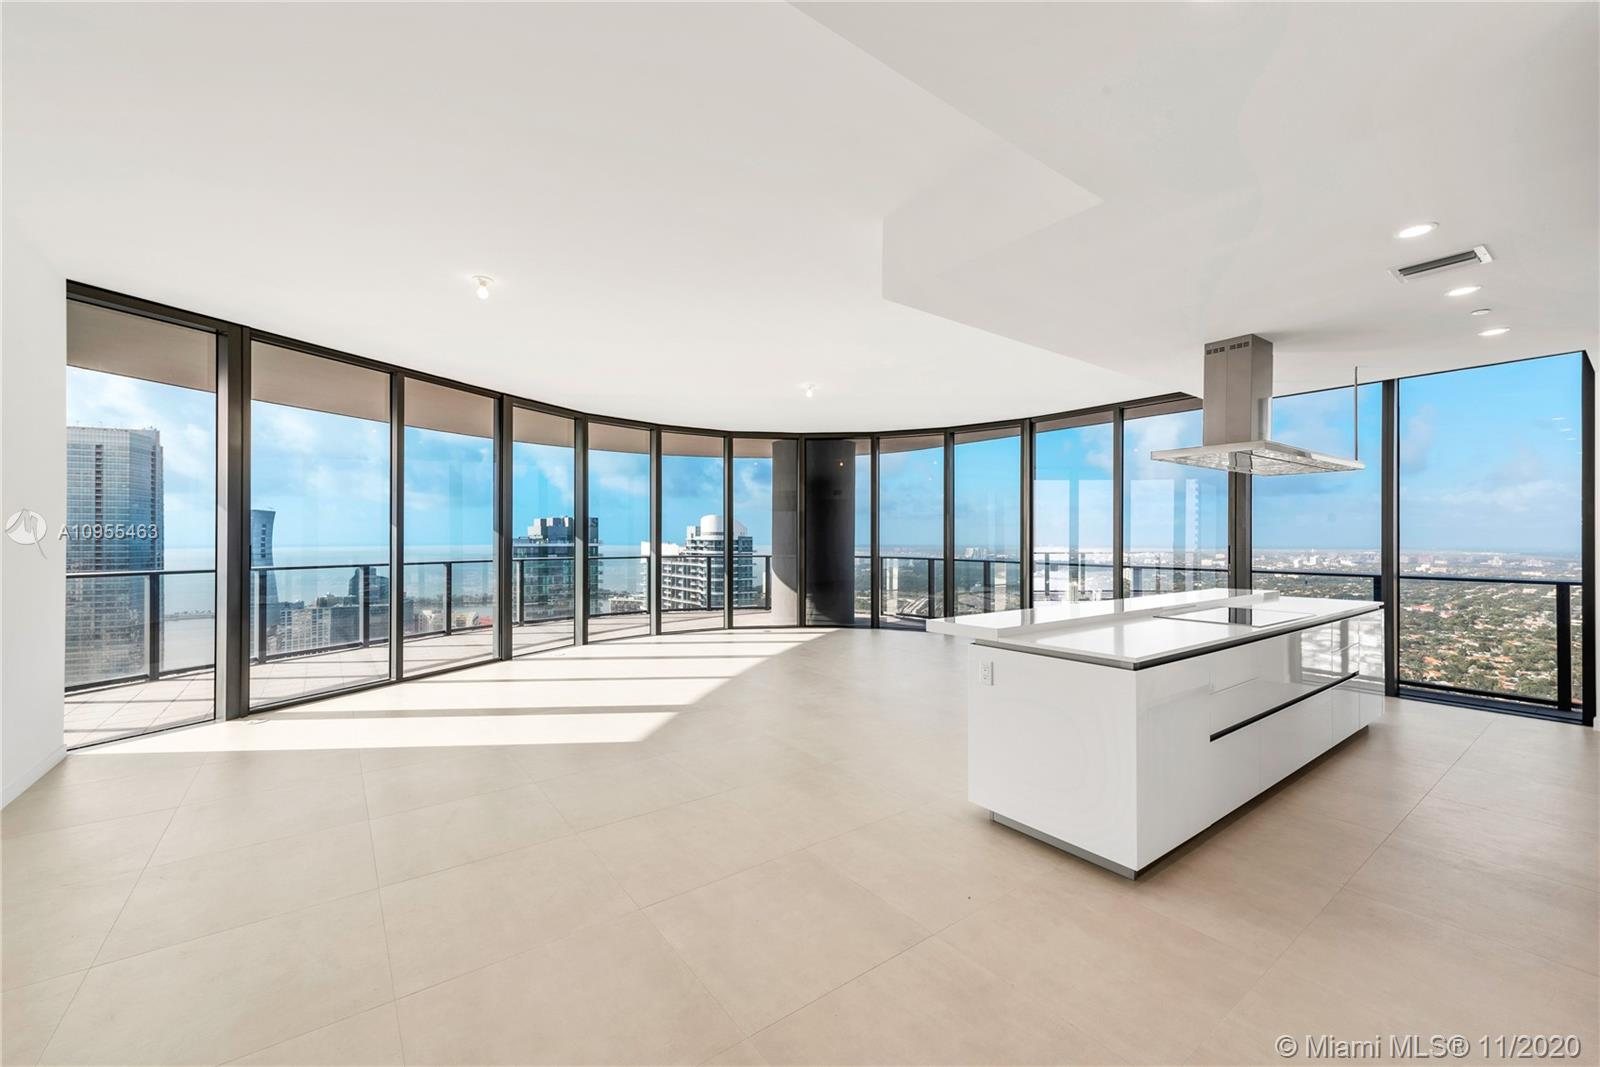 Worldclass views from this 3 Bed/3.5 Bath Lower Penthouse at Brickell Flatiron with higher ceilings. Best line in building.  Italian Porcelain floors, hidden hinge doors, Snaidero kitchens, and a great floorplan create an incredible home in the sky. Come see the rooftop pool, spa and fitness center with Pilates/yoga and aerobics studio, private steam and sauna facilities. Some of the other amenities include a children's play area, game room, movie theatre and recreation rooms. All in the heart of Brickell.